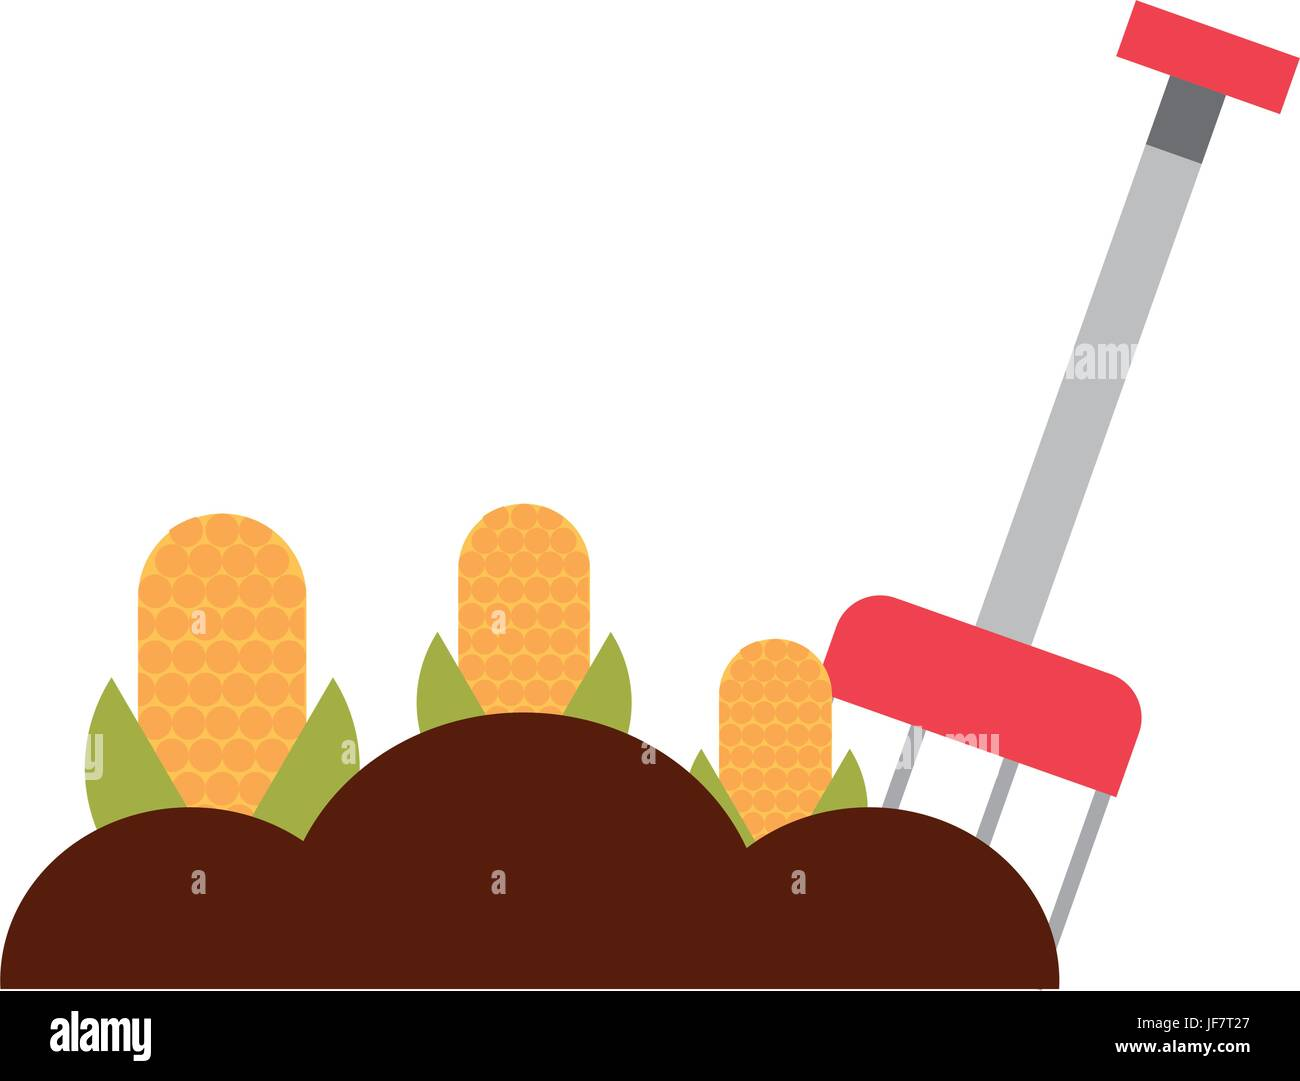 farm rake with corn cultivate - Stock Image